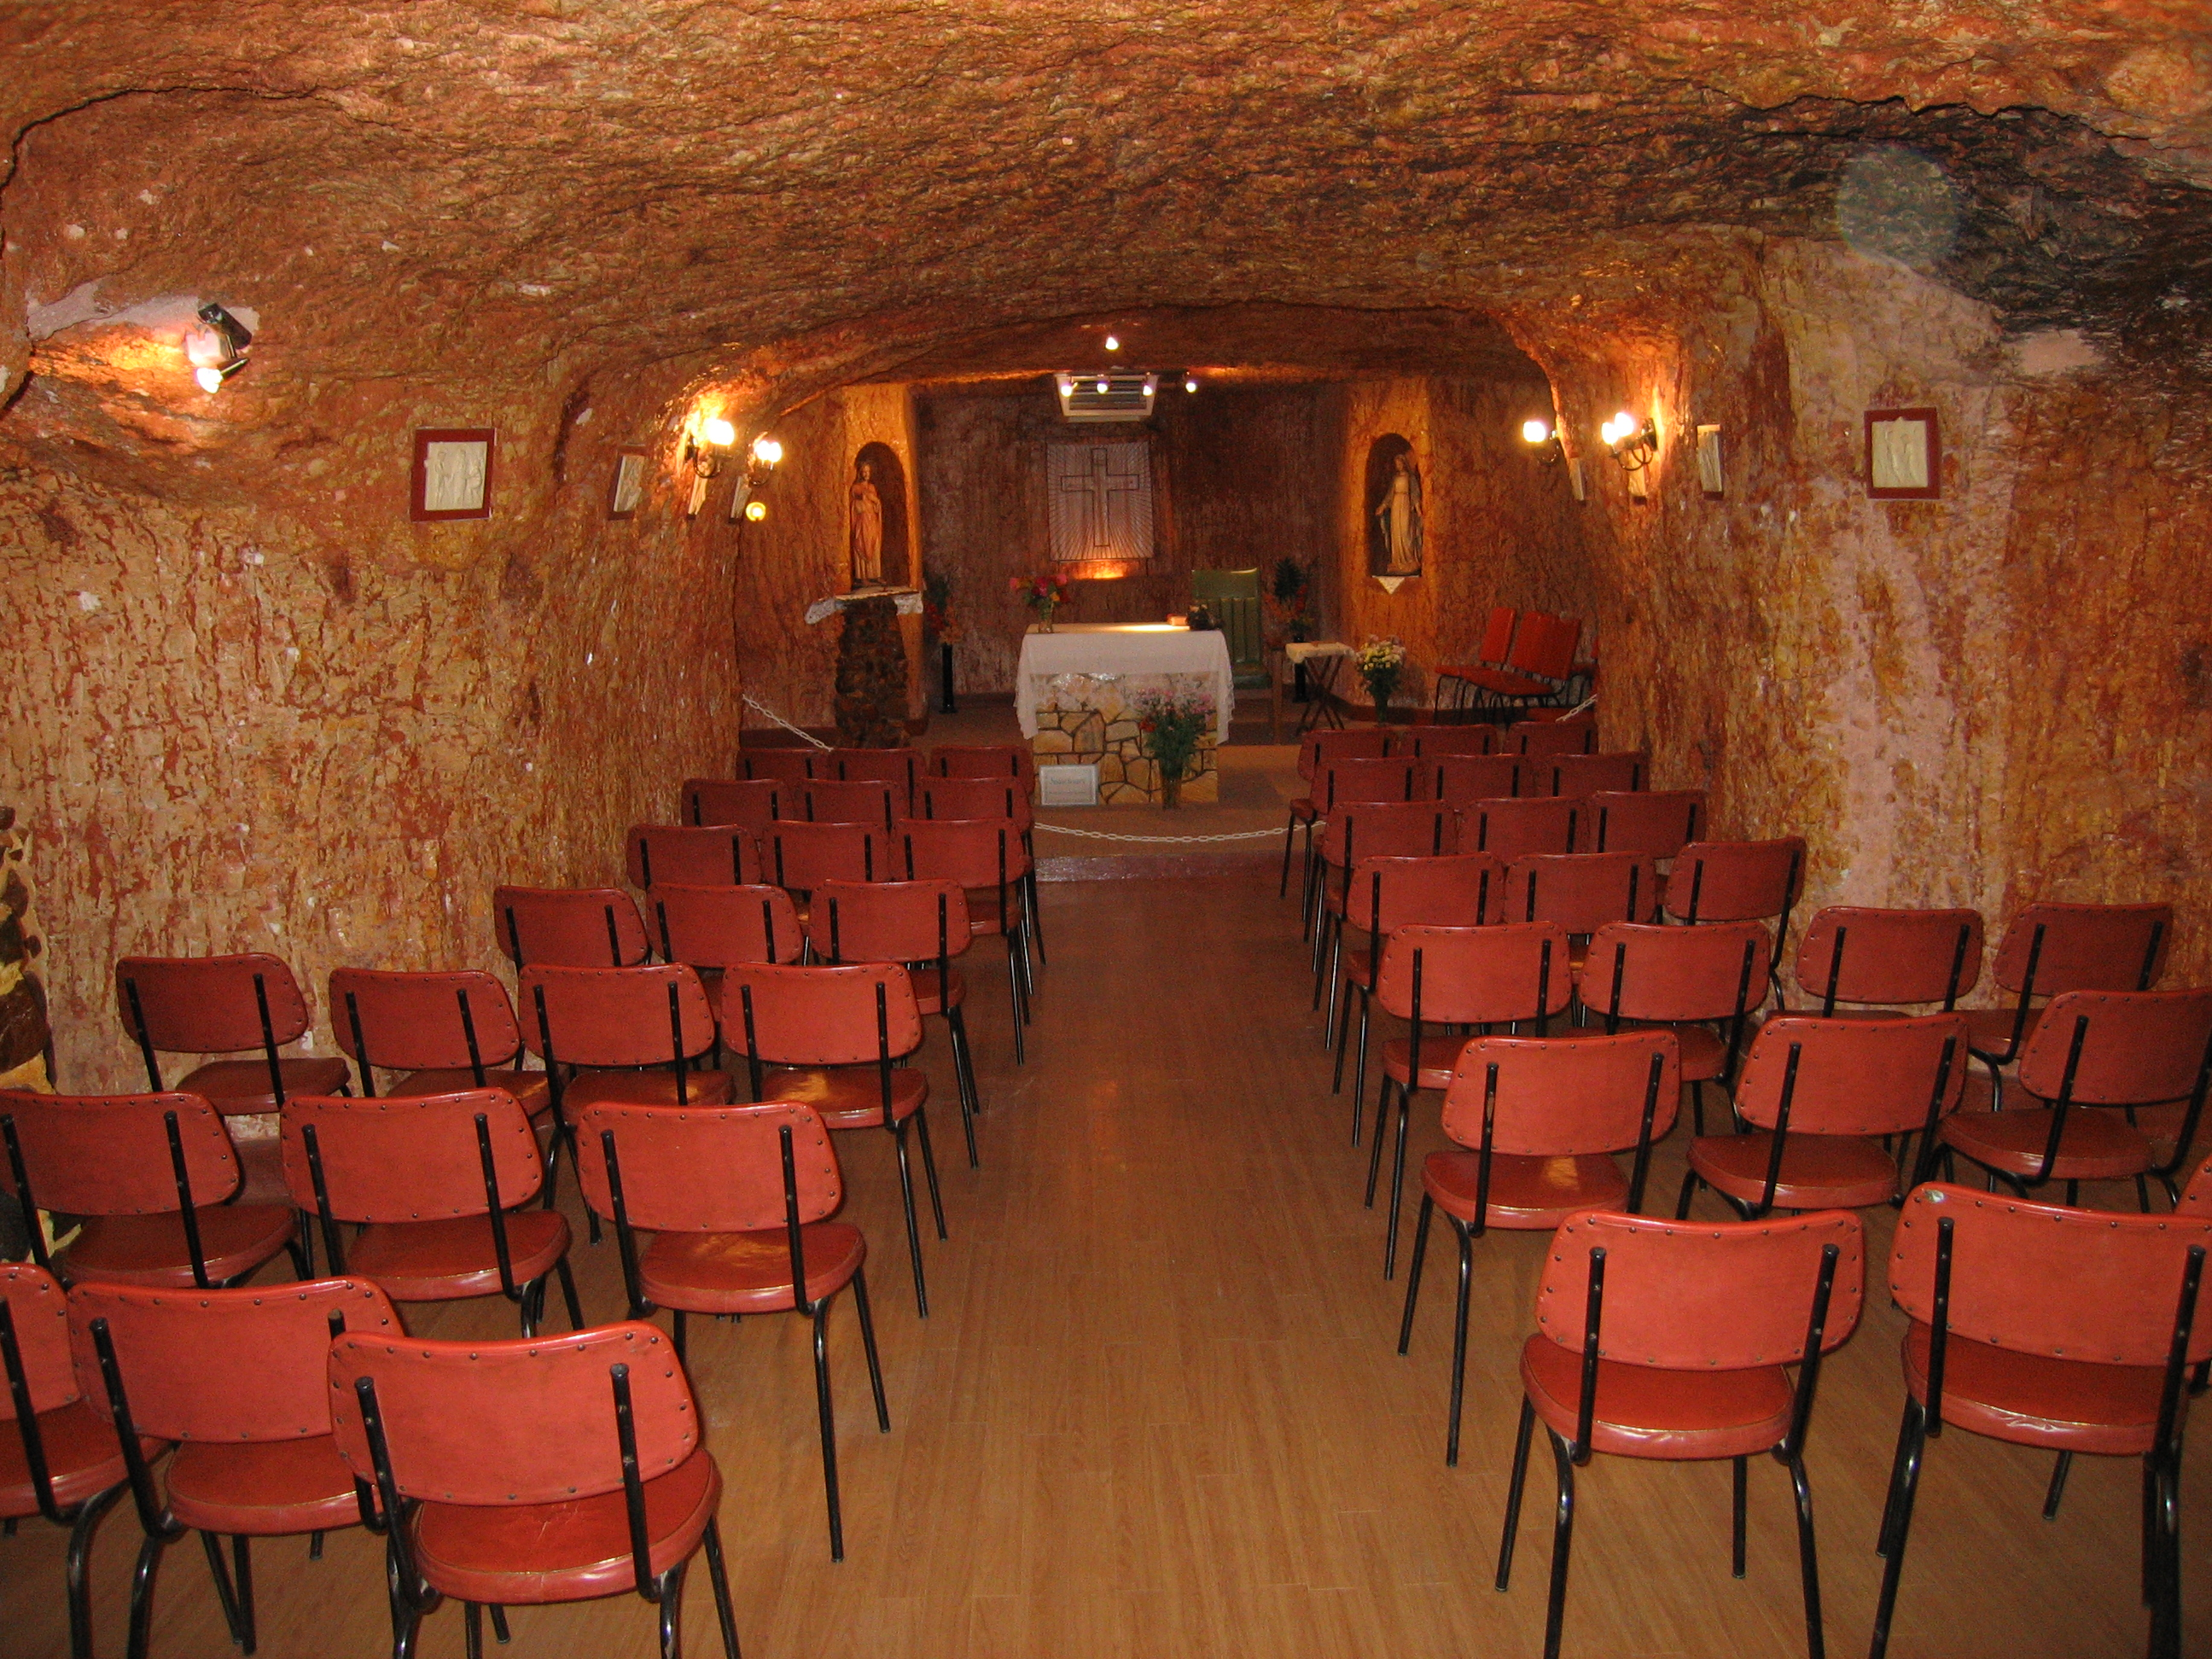 The Underground Churches Of Coober Pedy Not Your Average